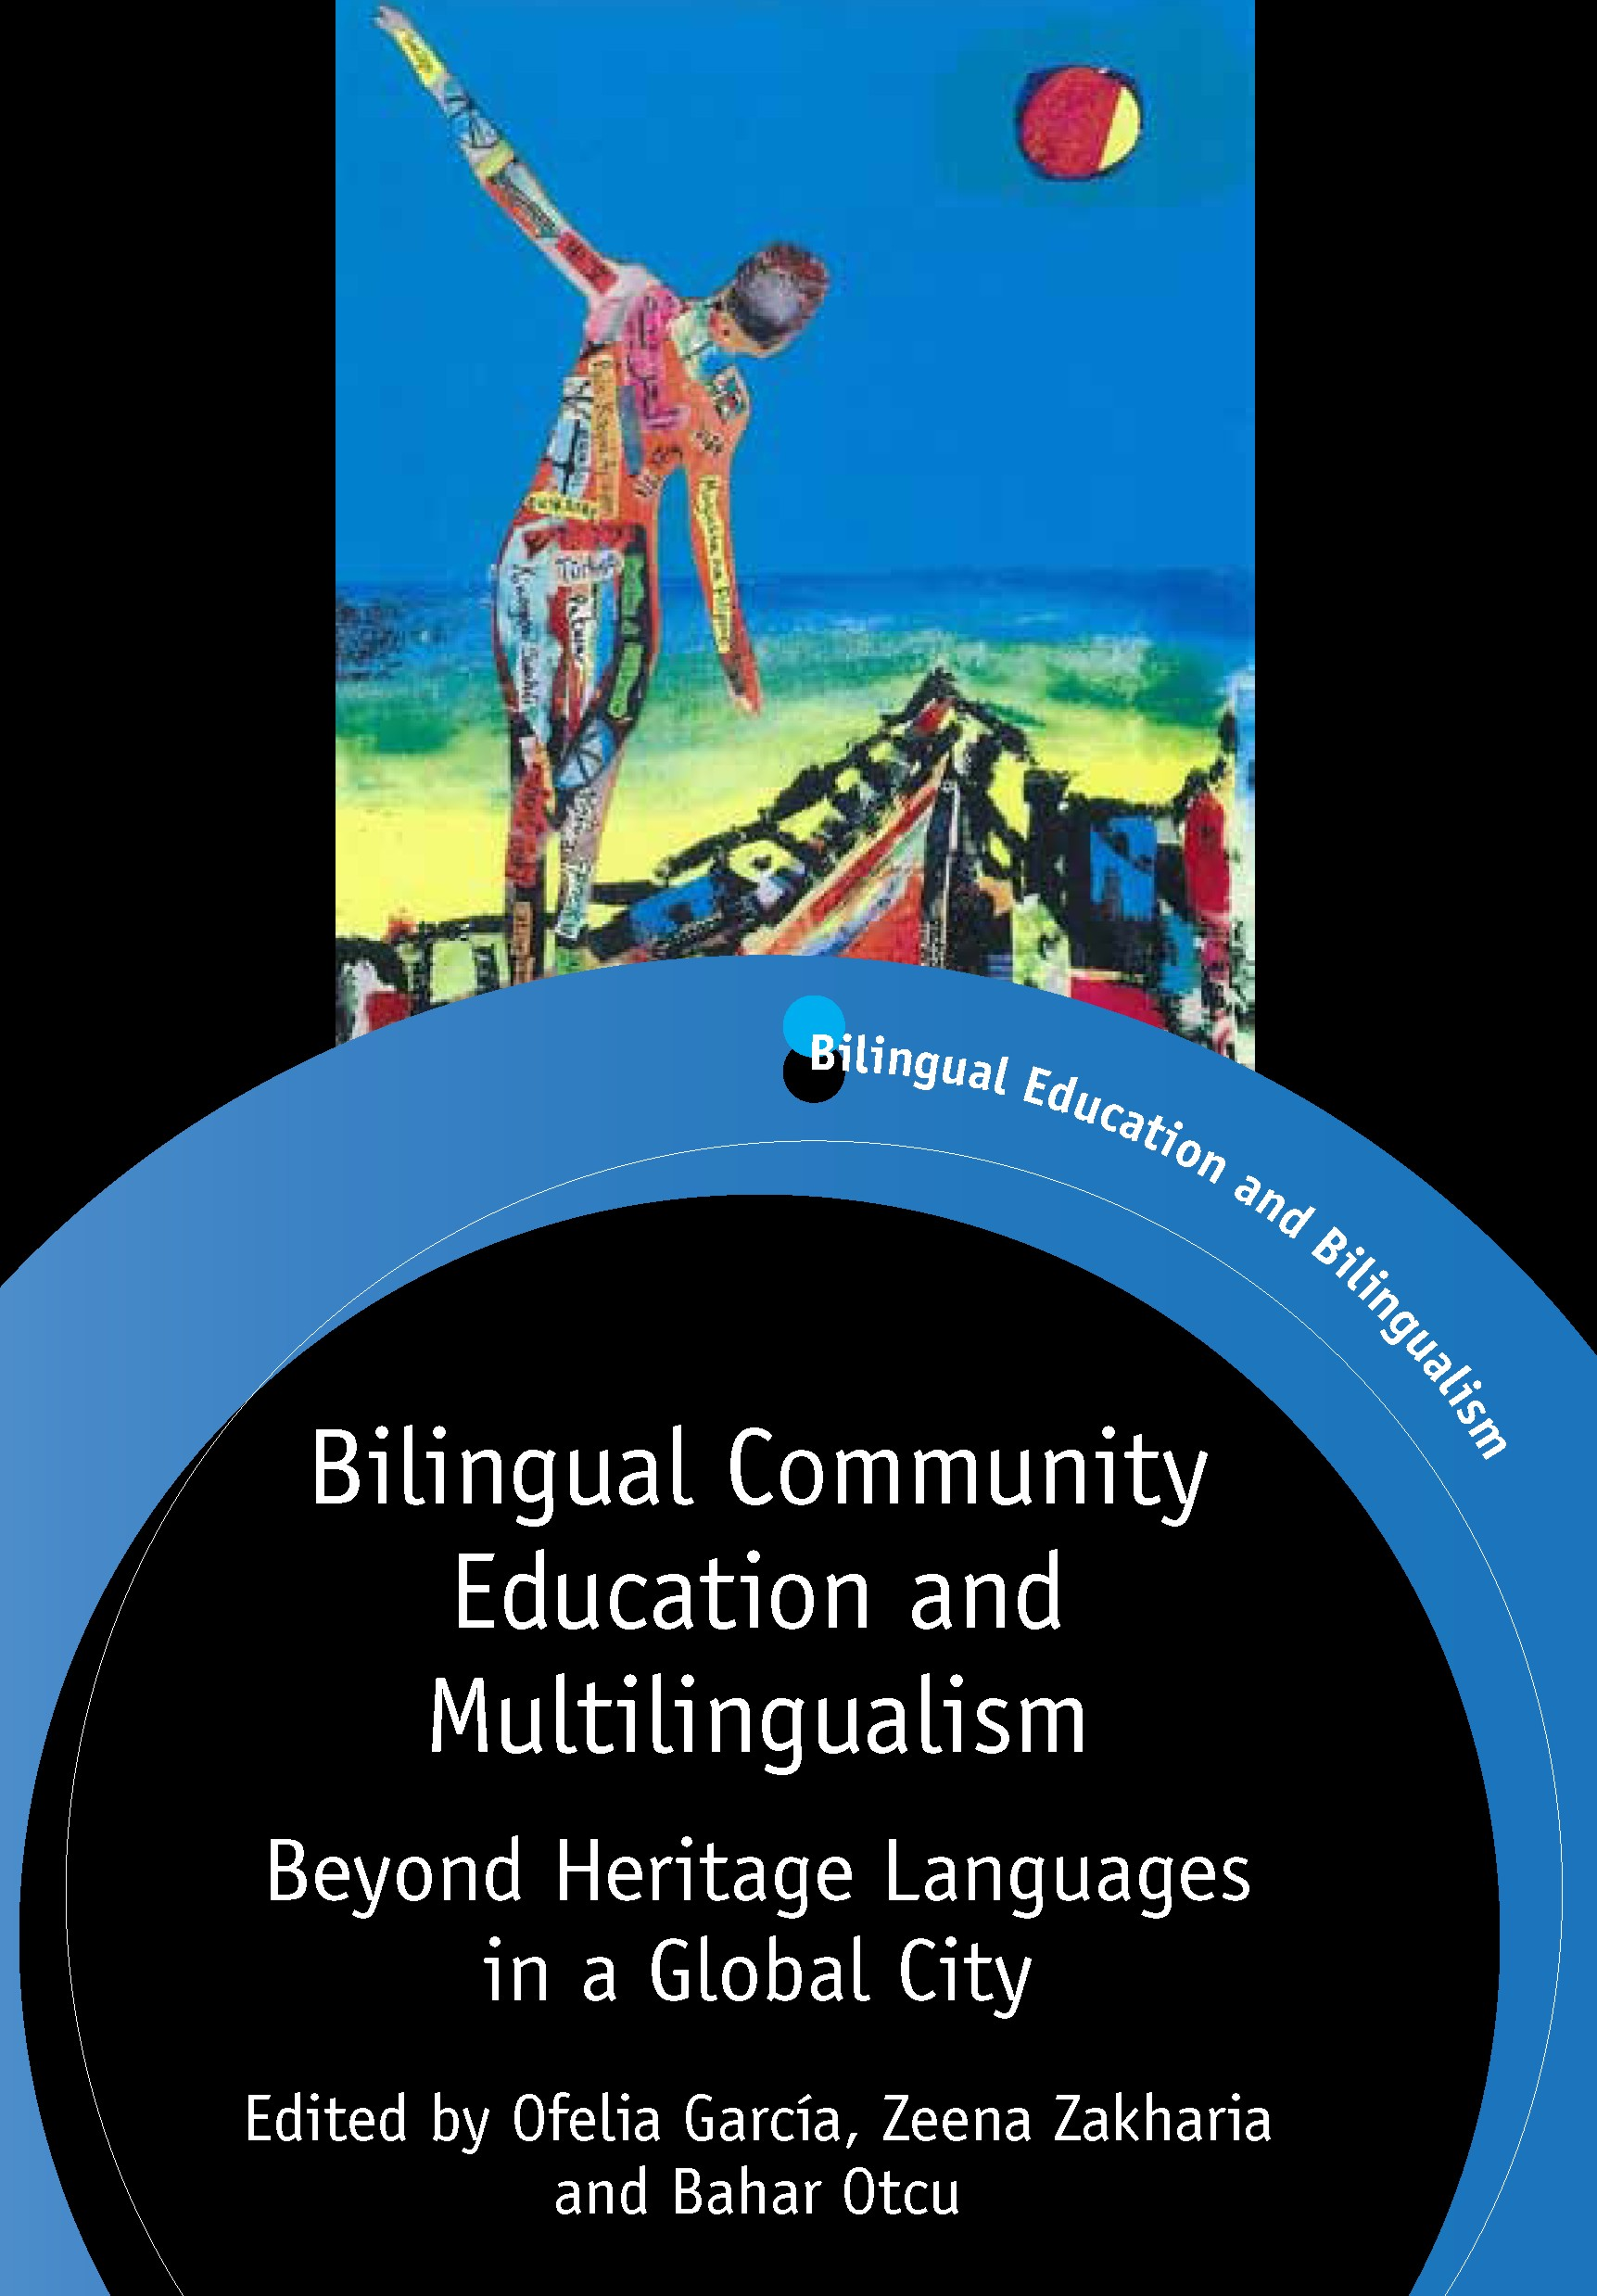 the importance of language and bilingual education in schools Prior to joining wested in 2016, billings' professional experience included serving as the ell co-advisor for the council of chief state school officers (ccsso) as a professor in the college of education at san diego state university and, as a consultant for stanford university's understanding language initiative.